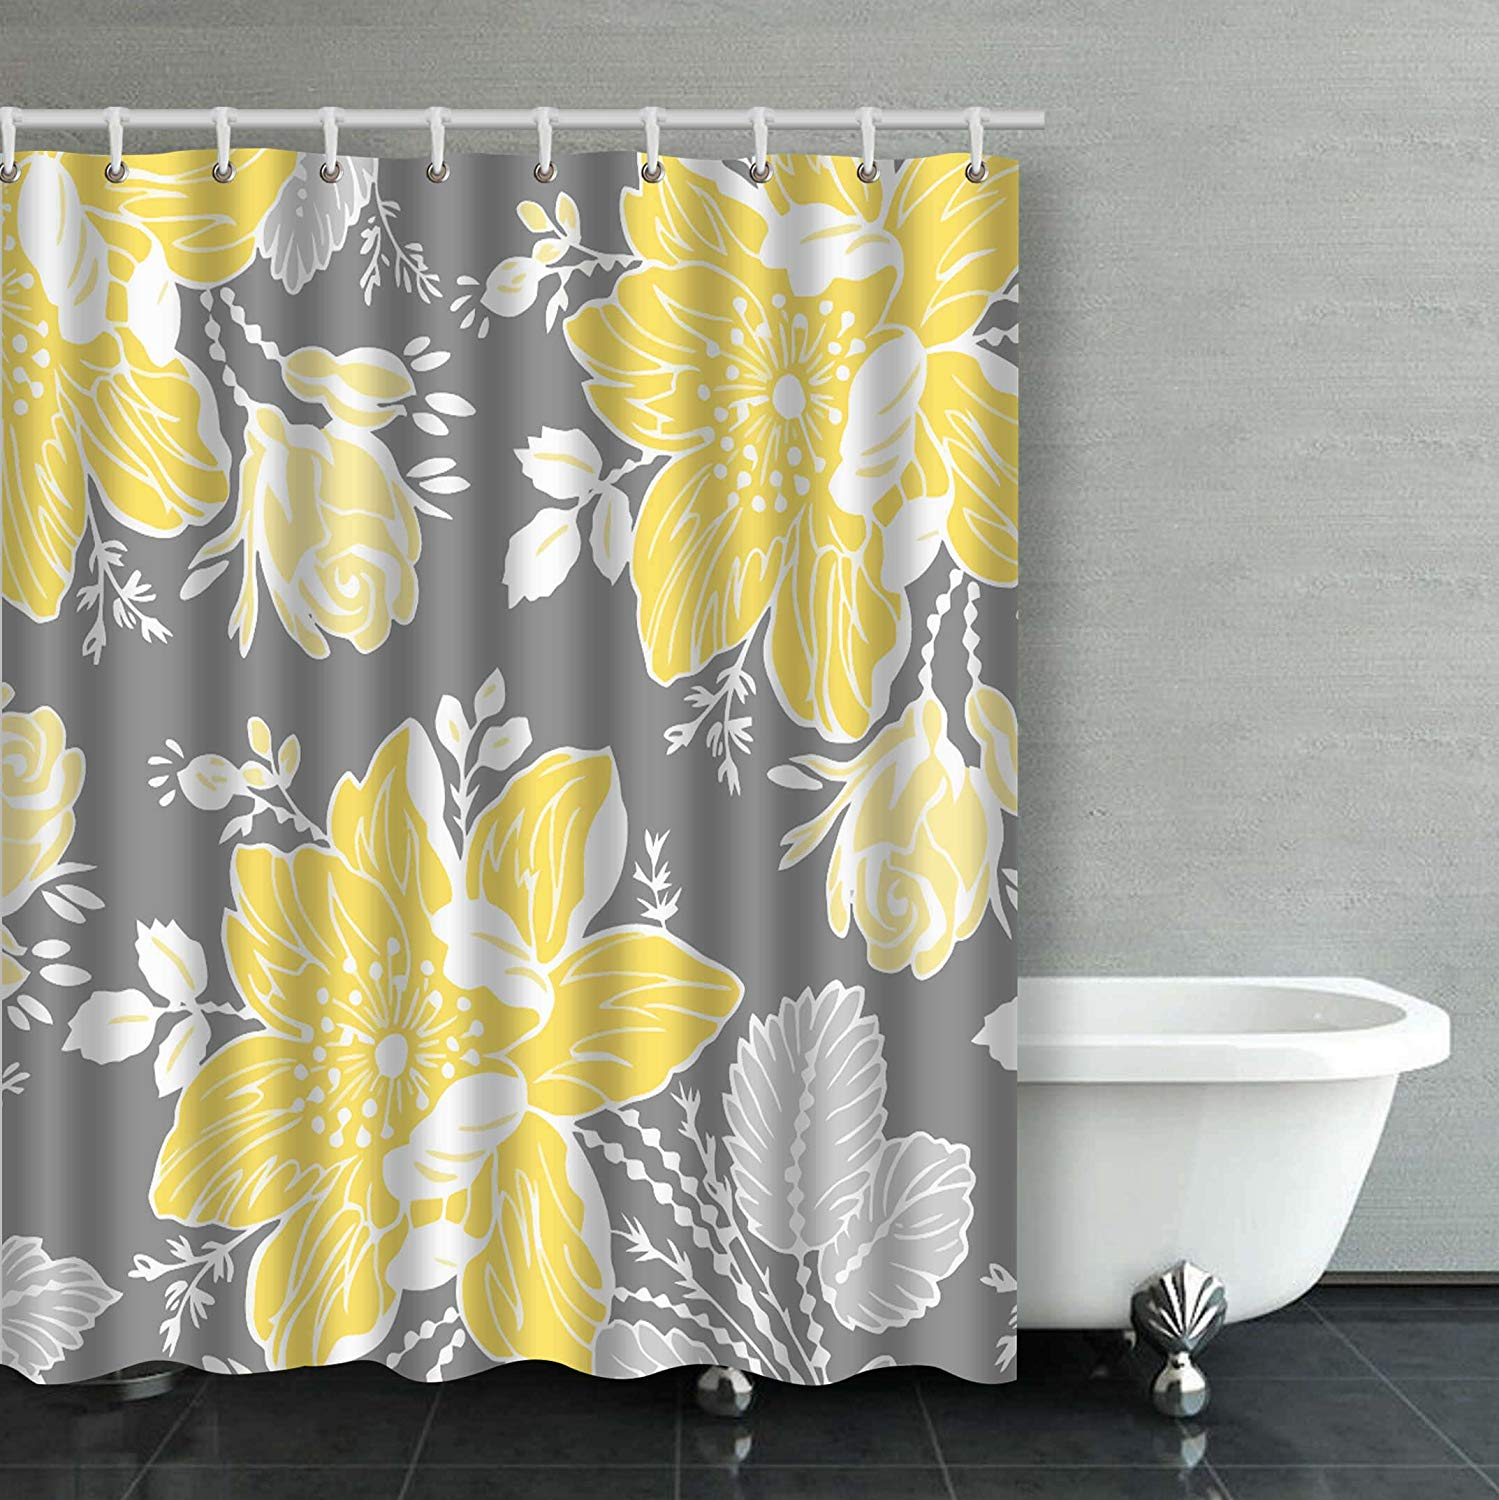 rylablue yellow gray white floral bathroom shower curtain 66x72 inches